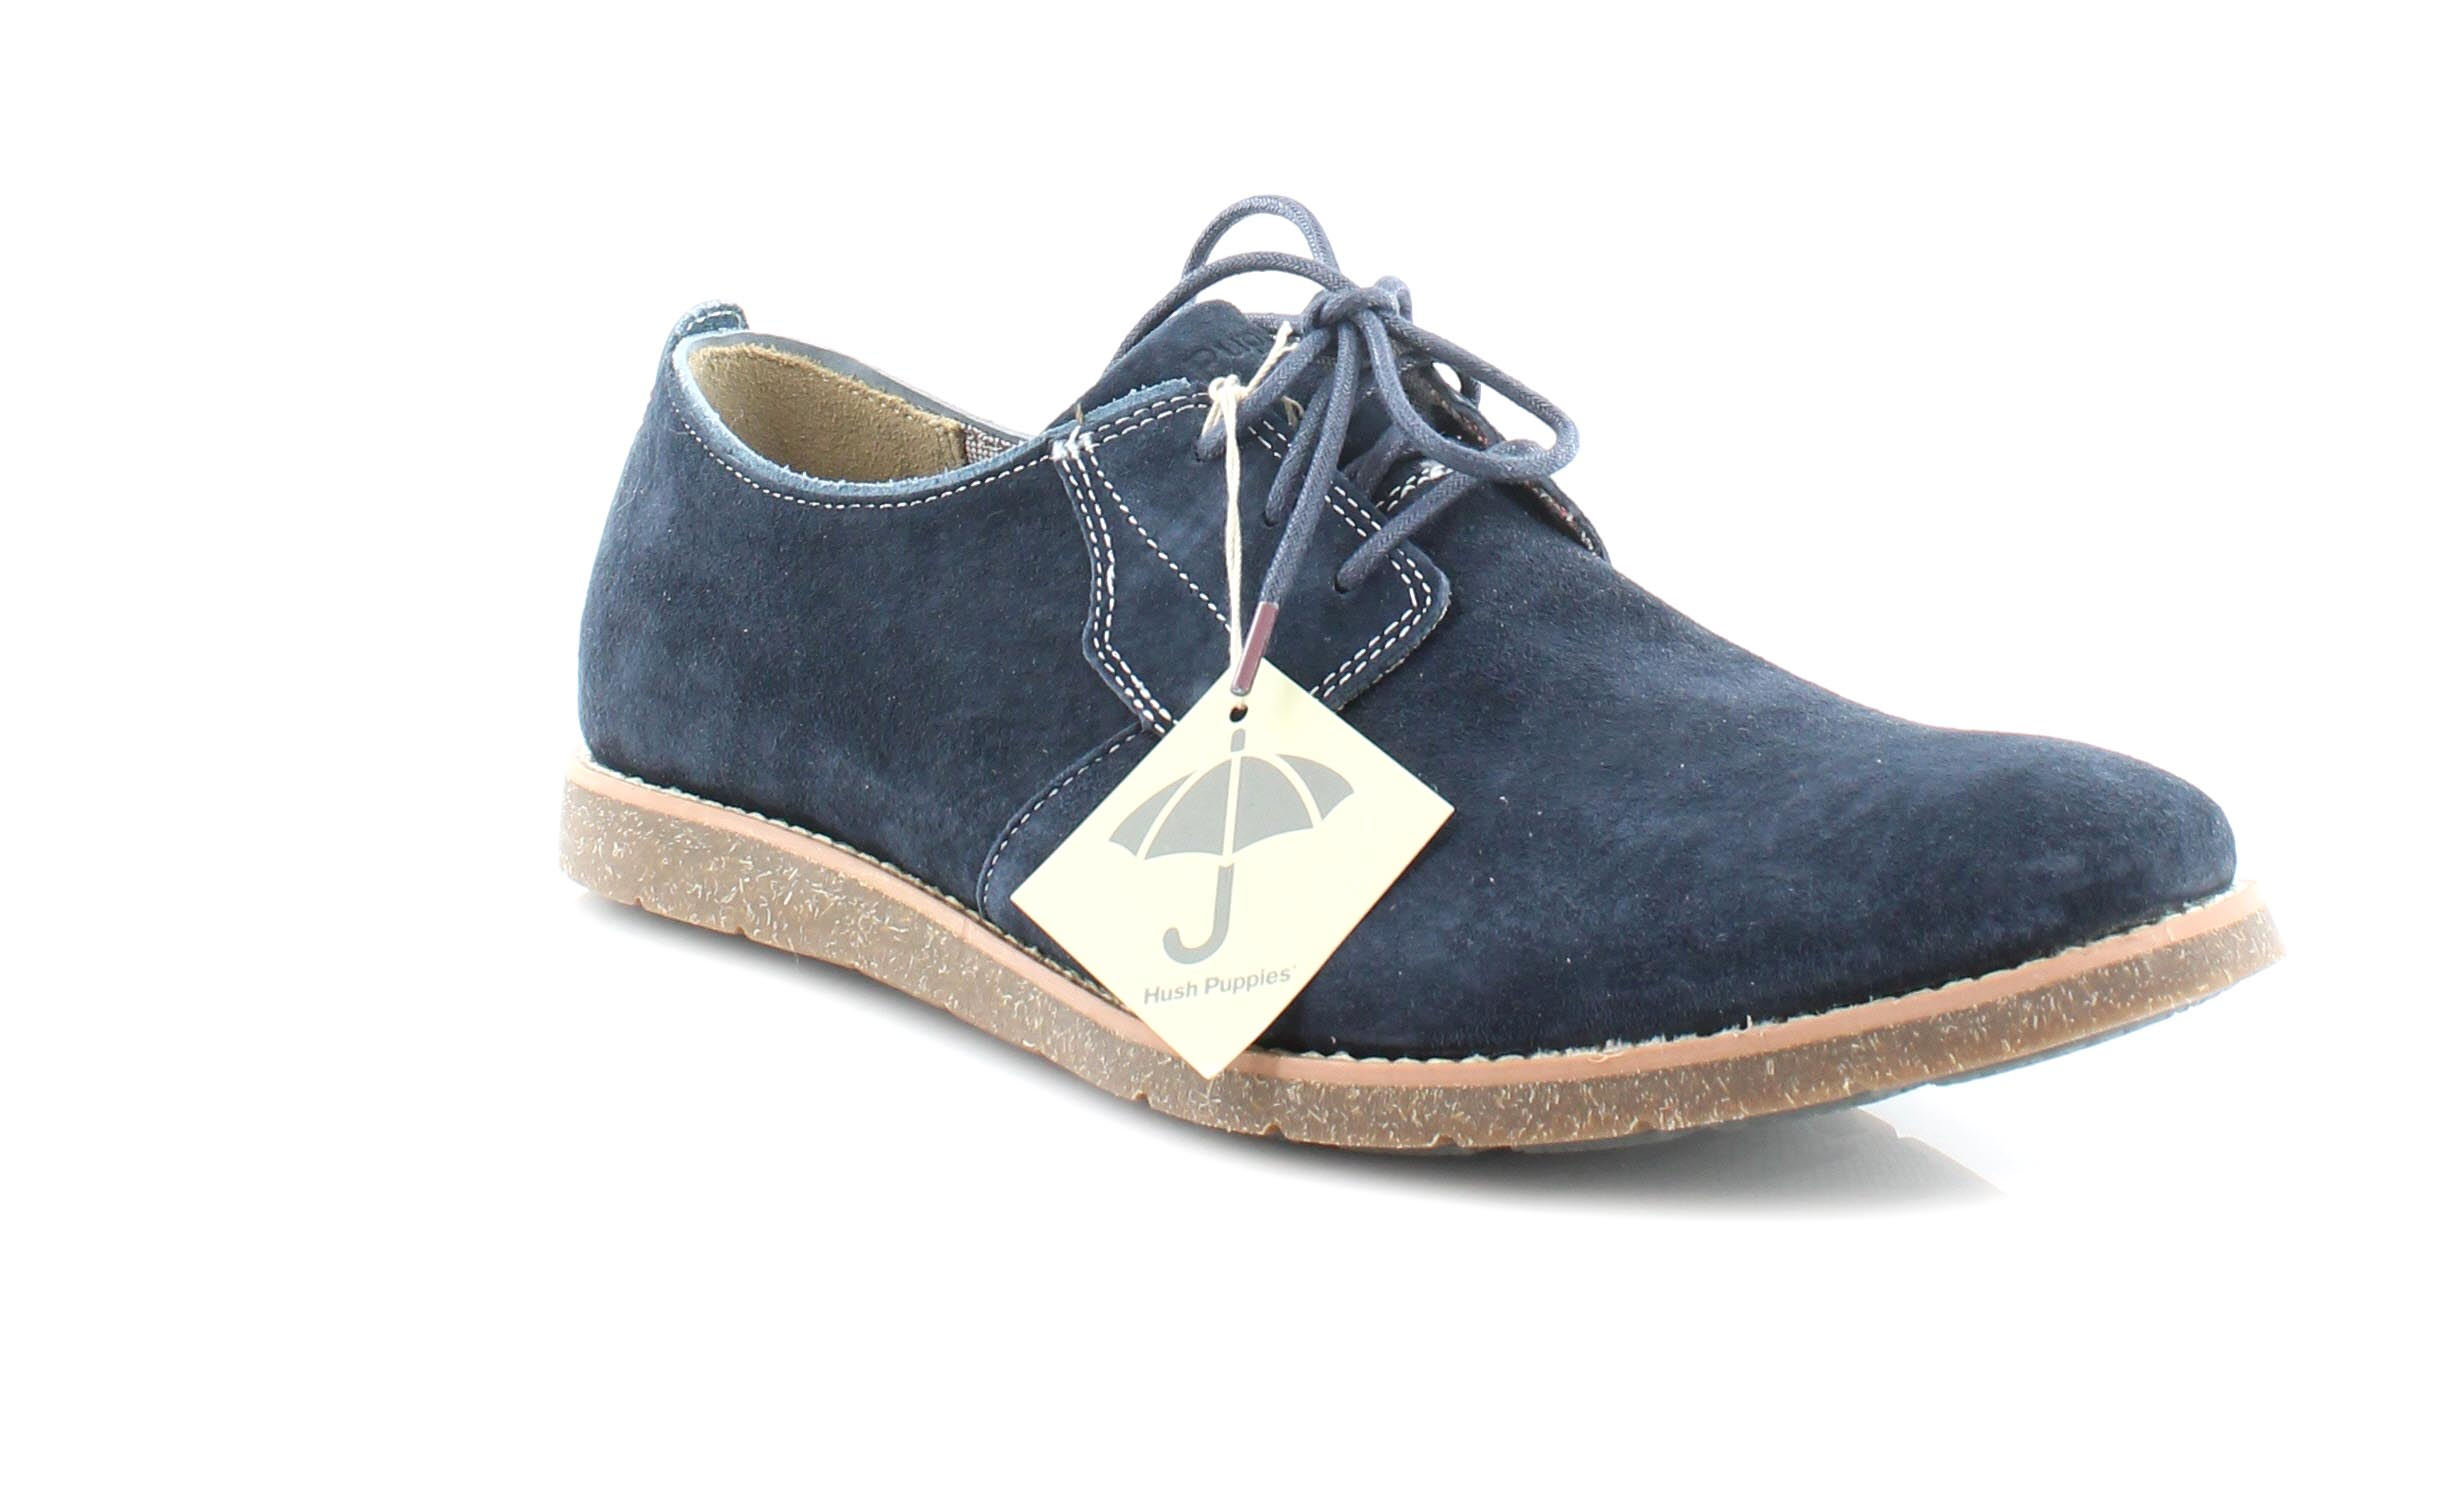 Hush Puppies Hans Jester Women's Flats & Oxfords by